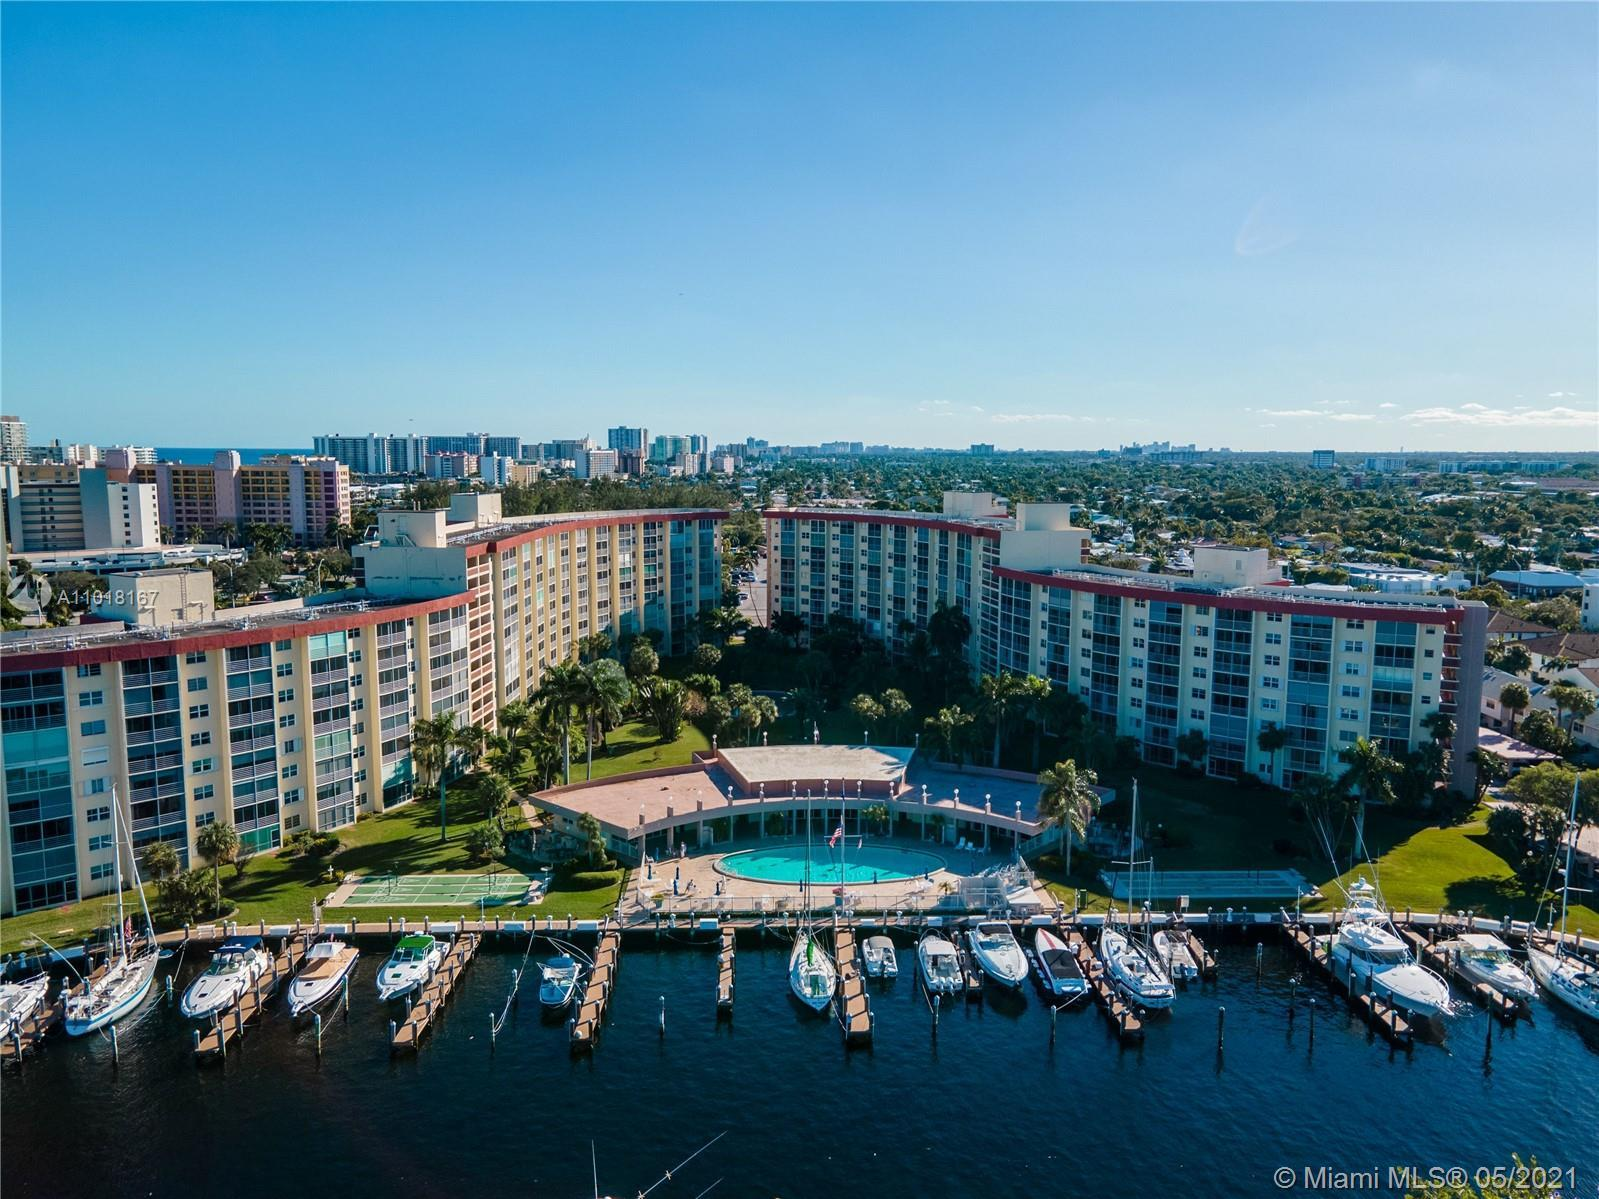 Active 55+ boating community. Serene and lovely garden and view of the fountain. Tile floors through